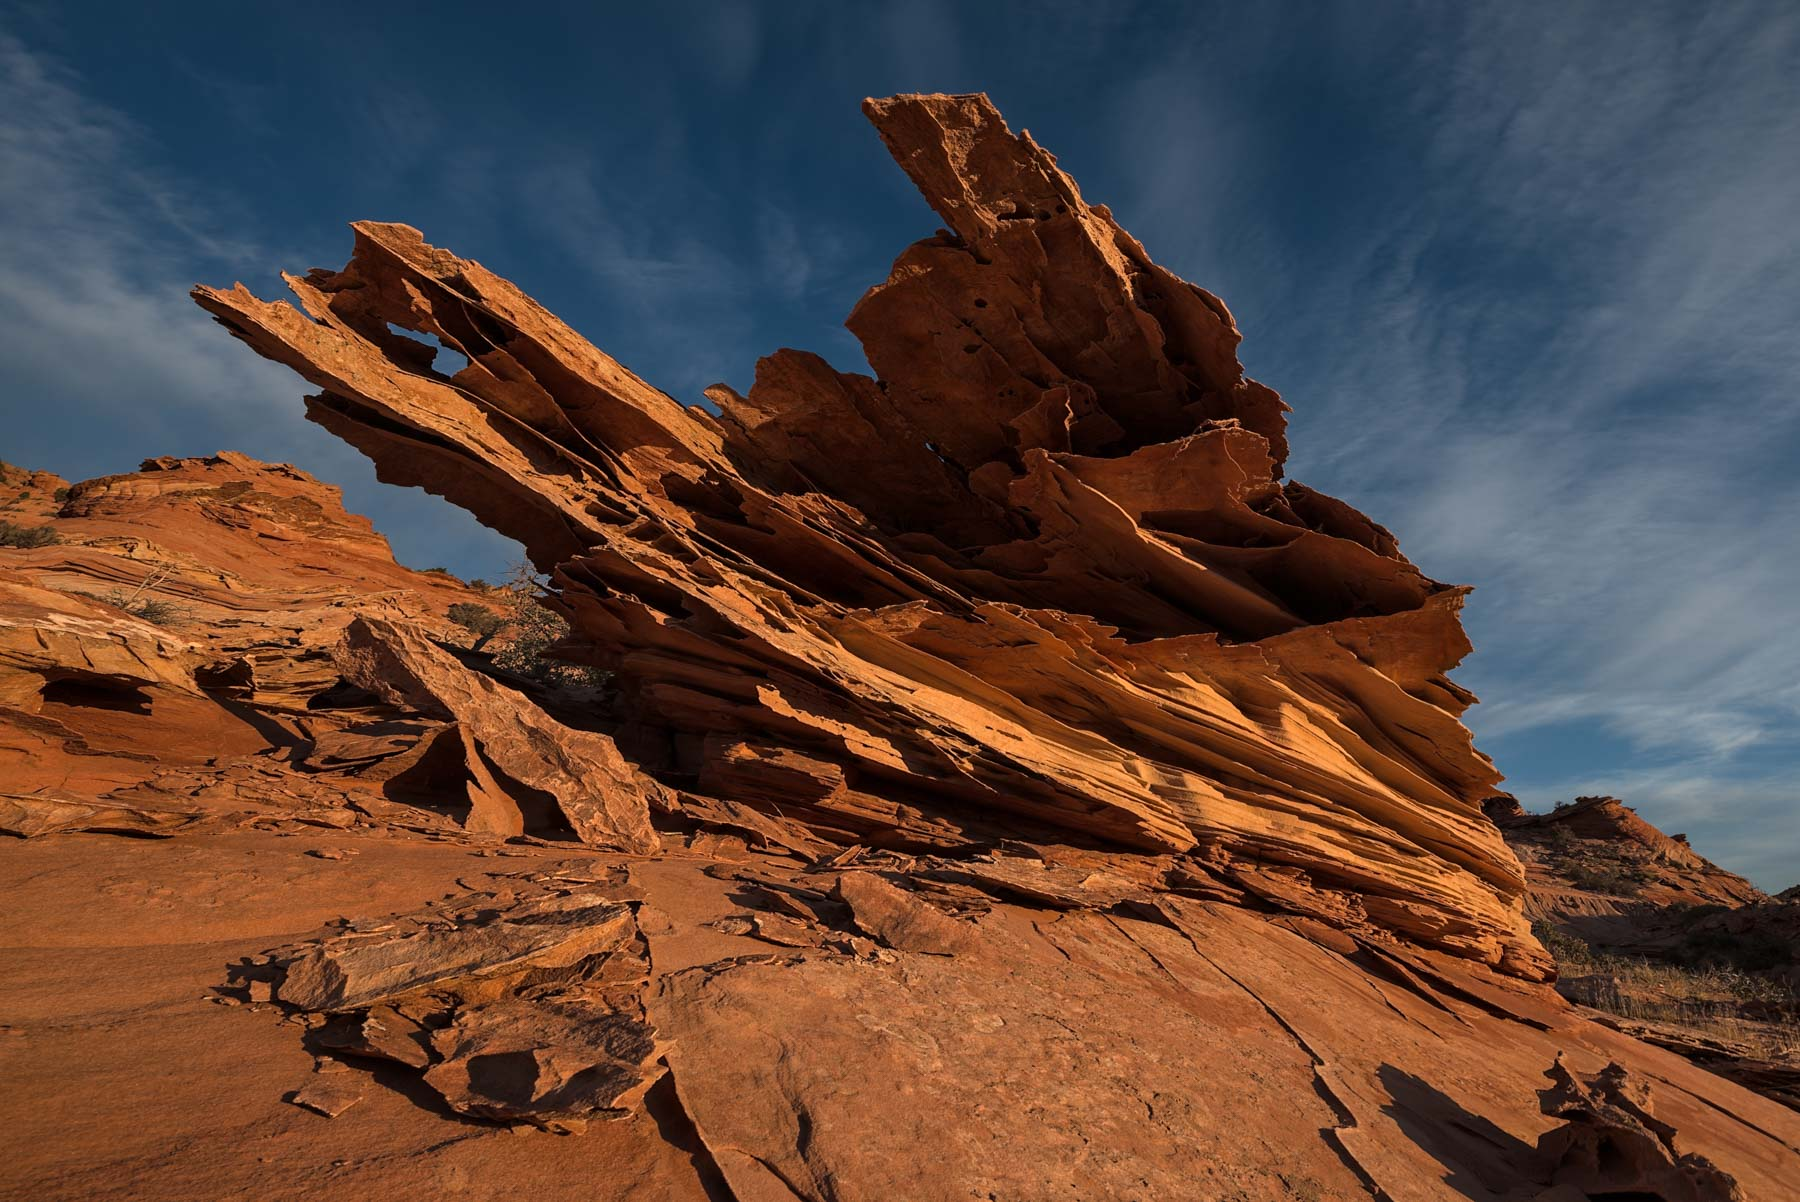 Lace Rock near The Boneyard in Coyote Buttes North, Arizona